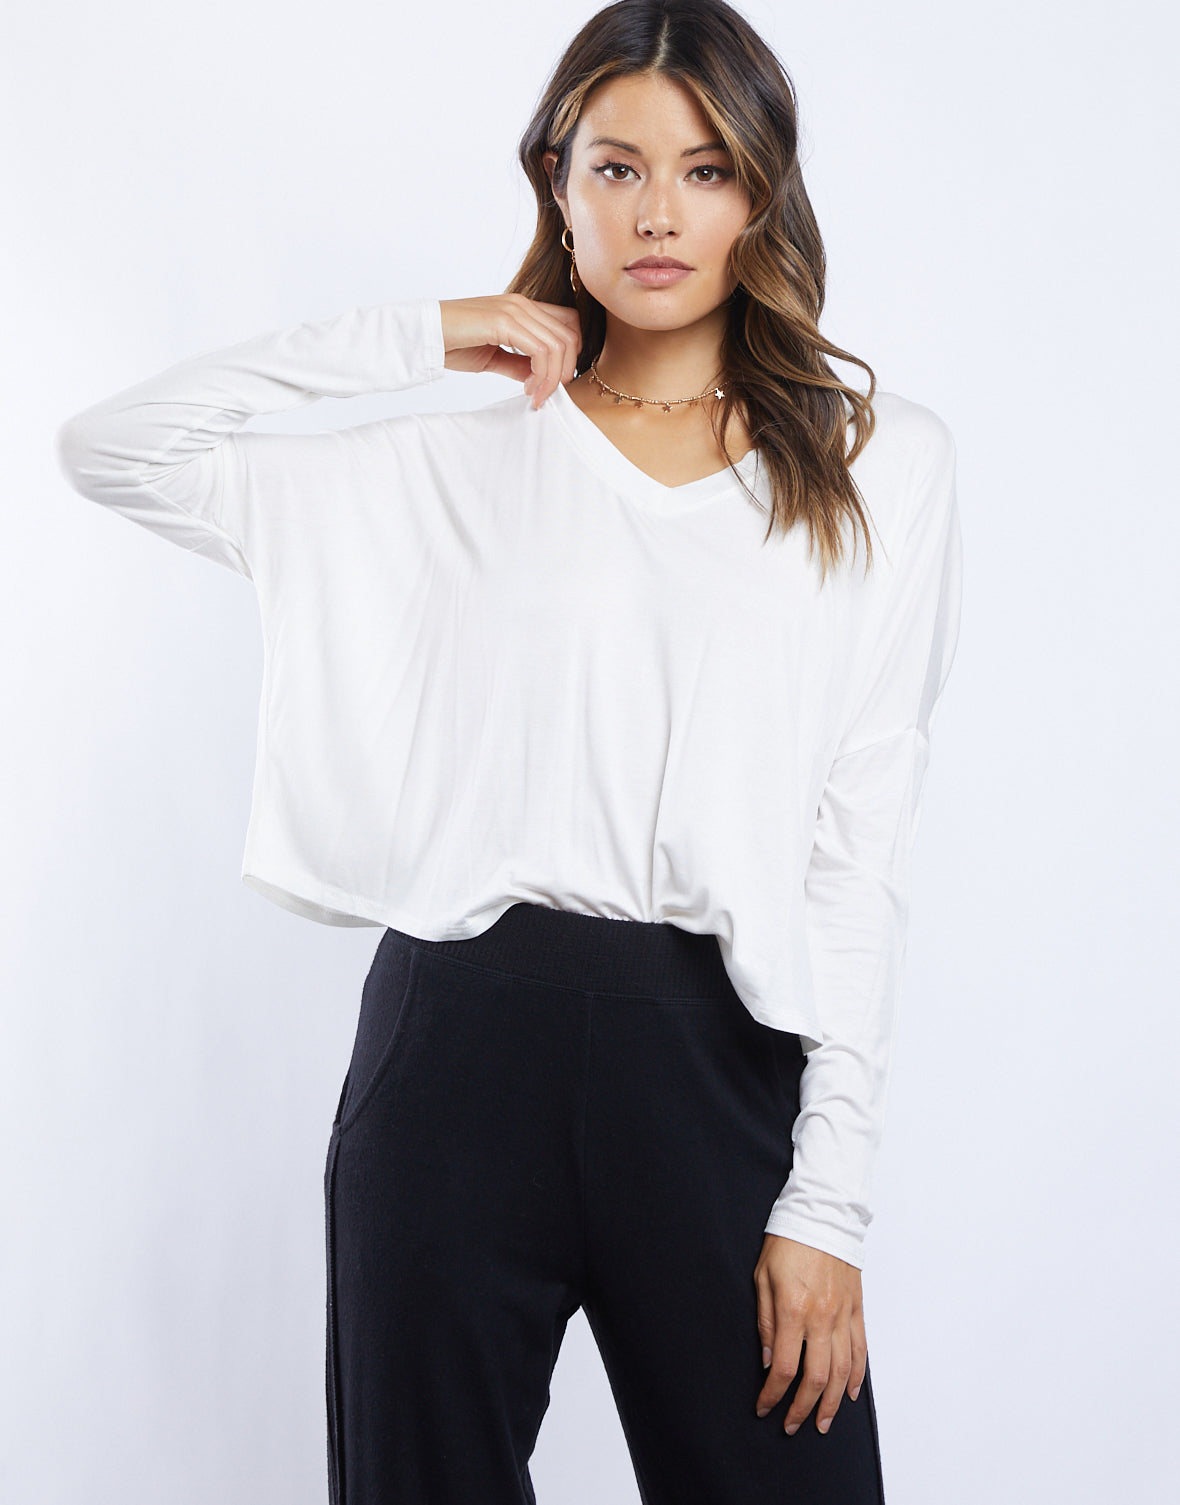 The Lightweight Kayla Long Sleeve Top